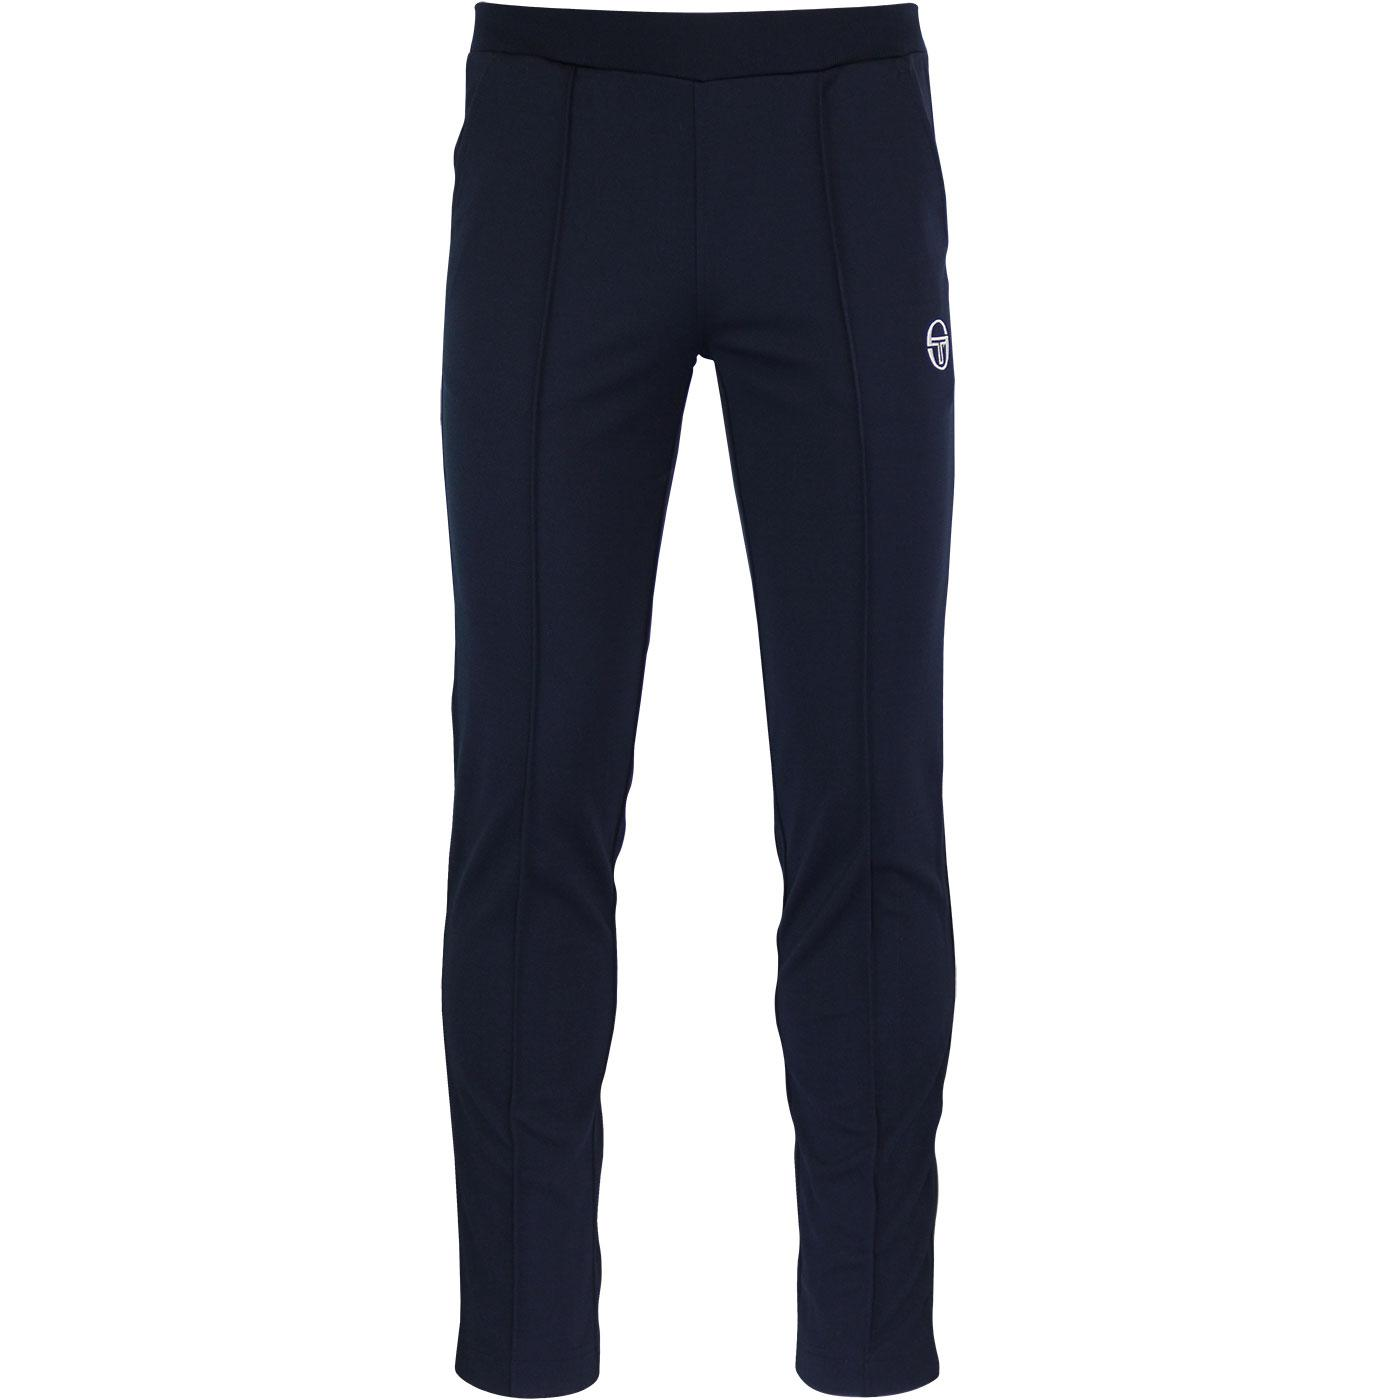 Young Line SERGIO TACCHINI Retro Track Bottoms (N)